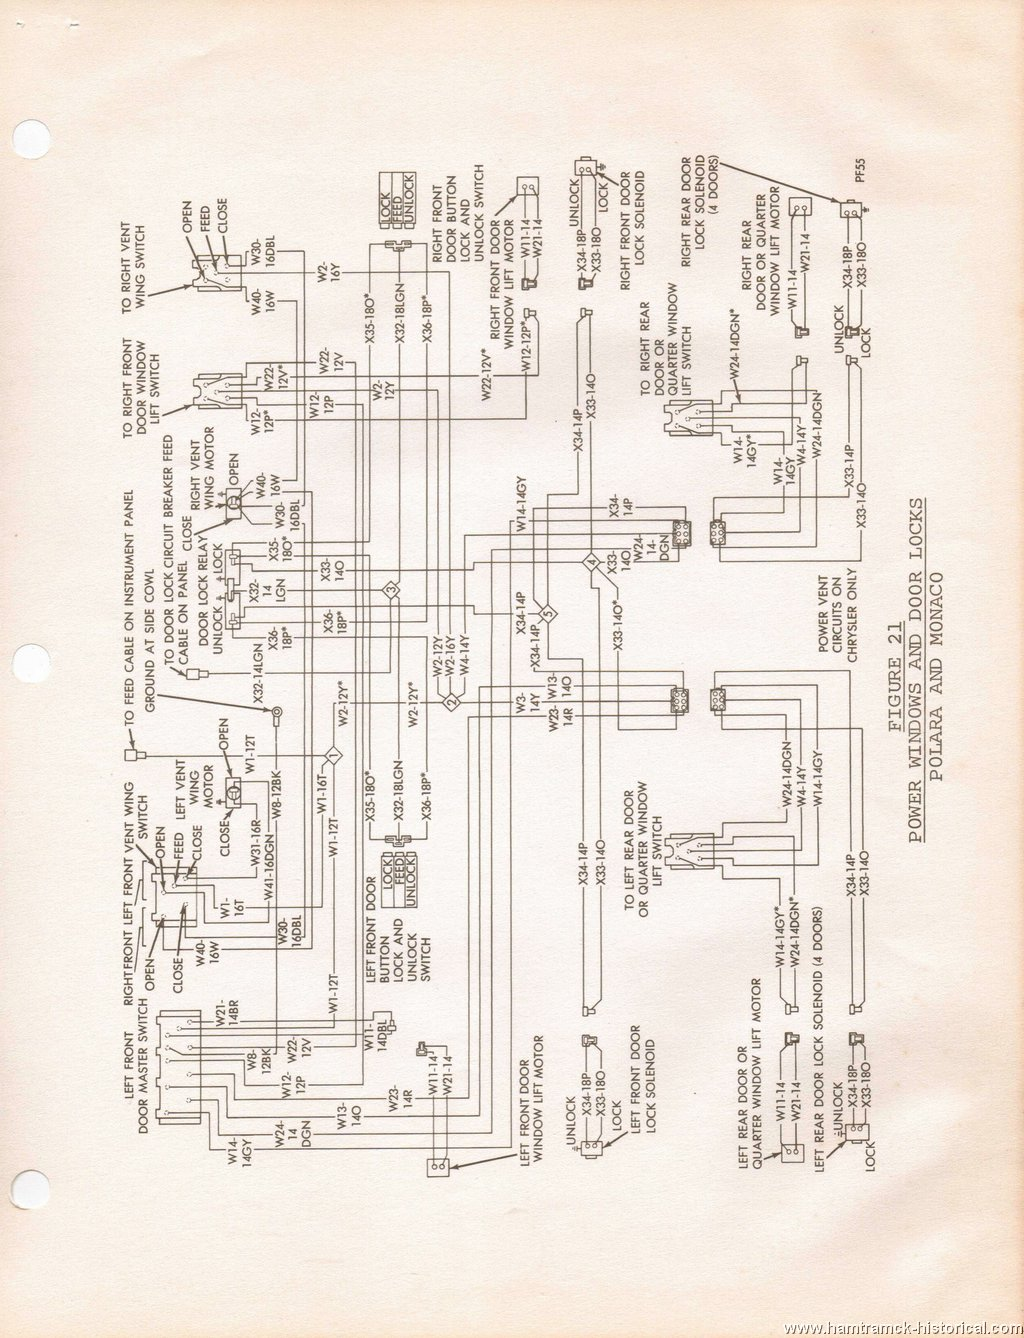 08-13-72D%20p2 Radio Wiring Diagram For Dodge Charger on